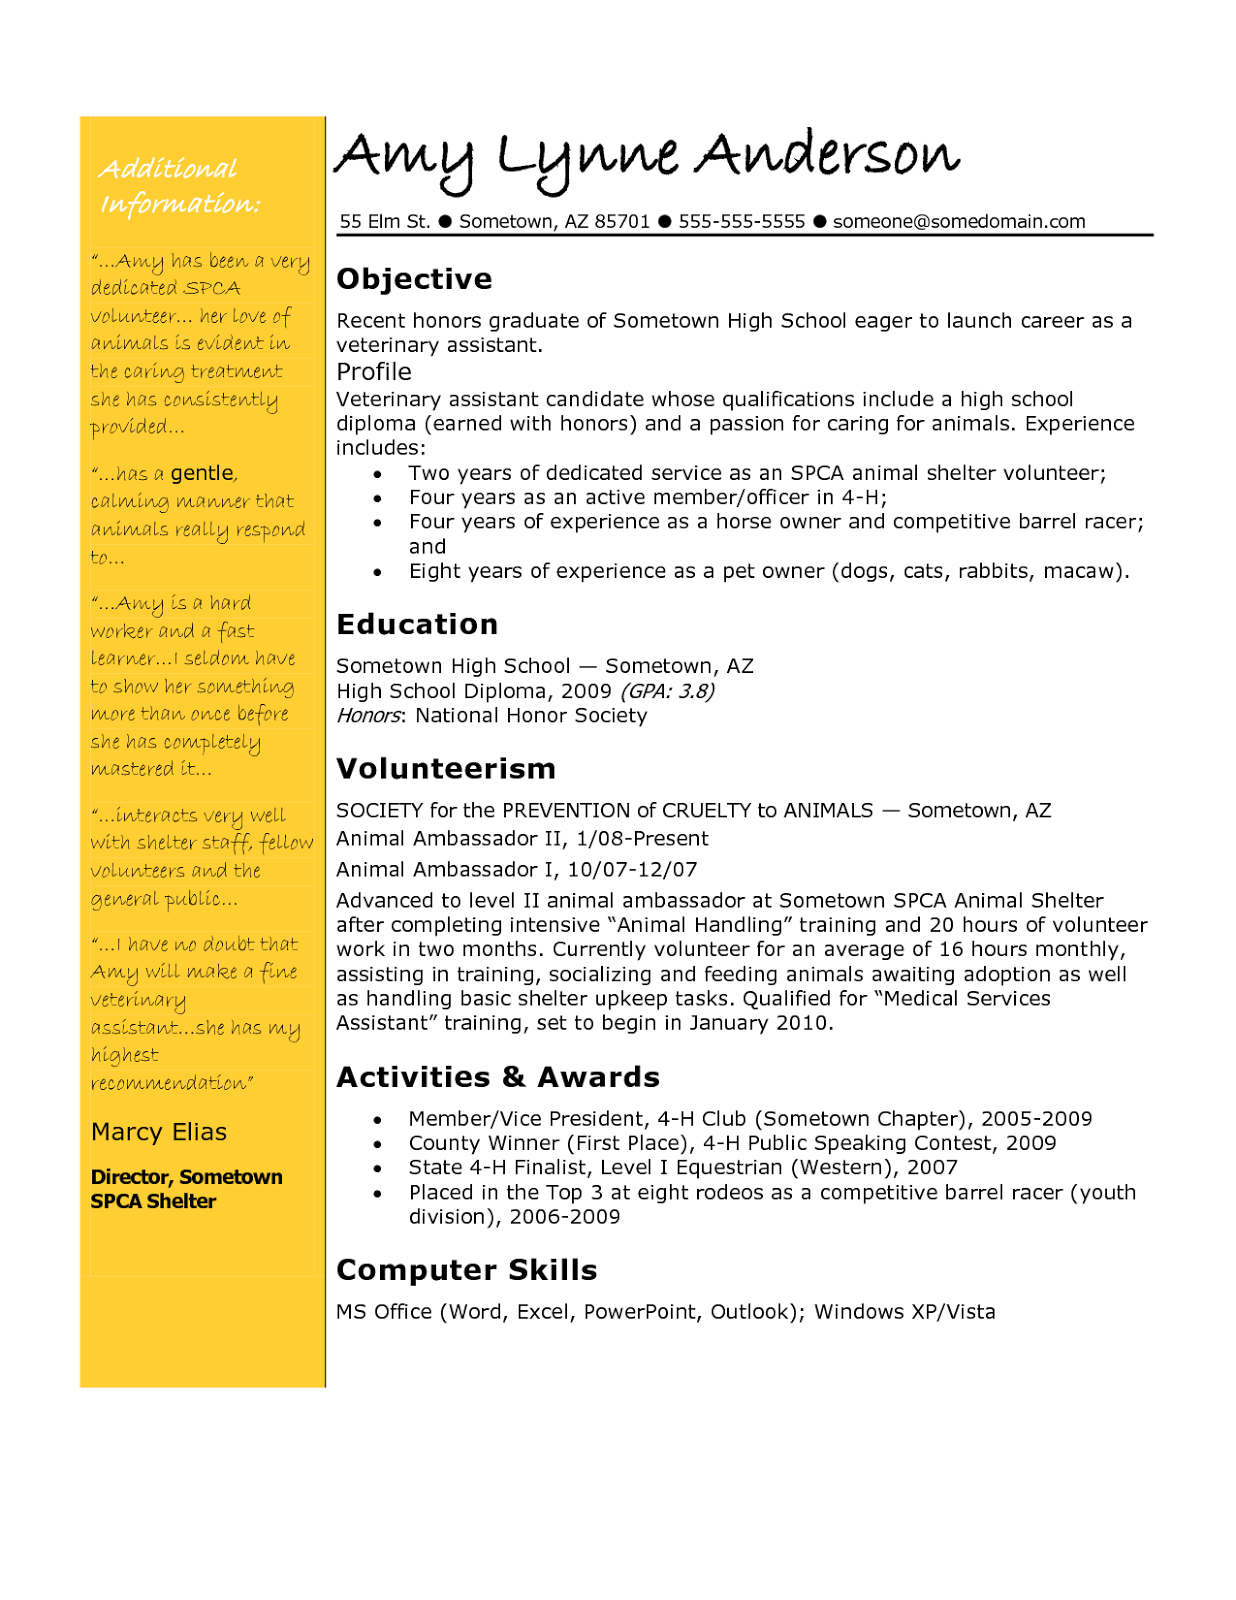 Resume Objective Statement Help Resume Objectives Example Midland Autocare